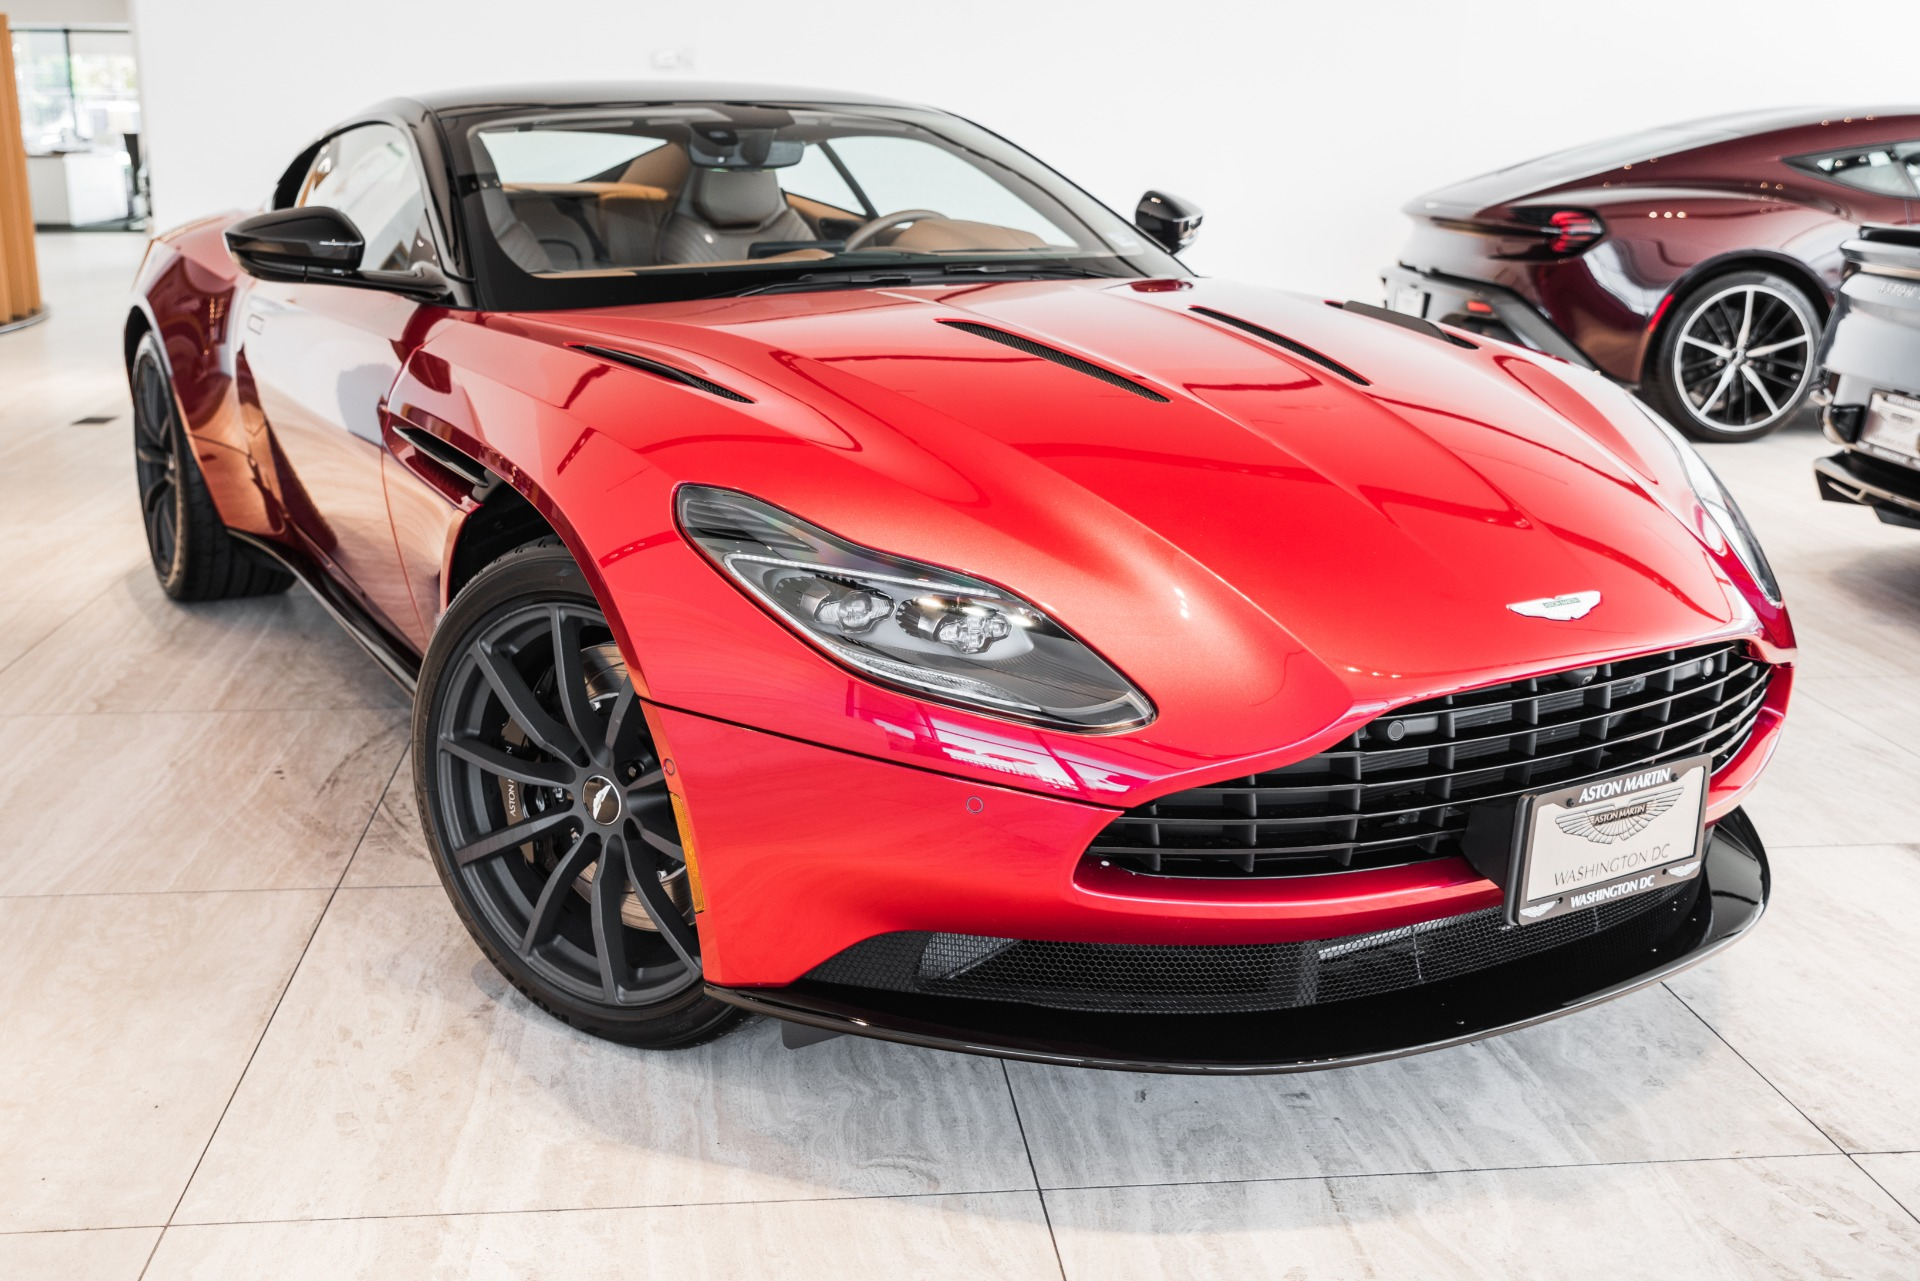 2020 Aston Martin Db11 Amr Stock 20nl08979 For Sale Near Vienna Va Va Aston Martin Dealer For Sale In Vienna Va 20nl08979 Exclusive Automotive Group